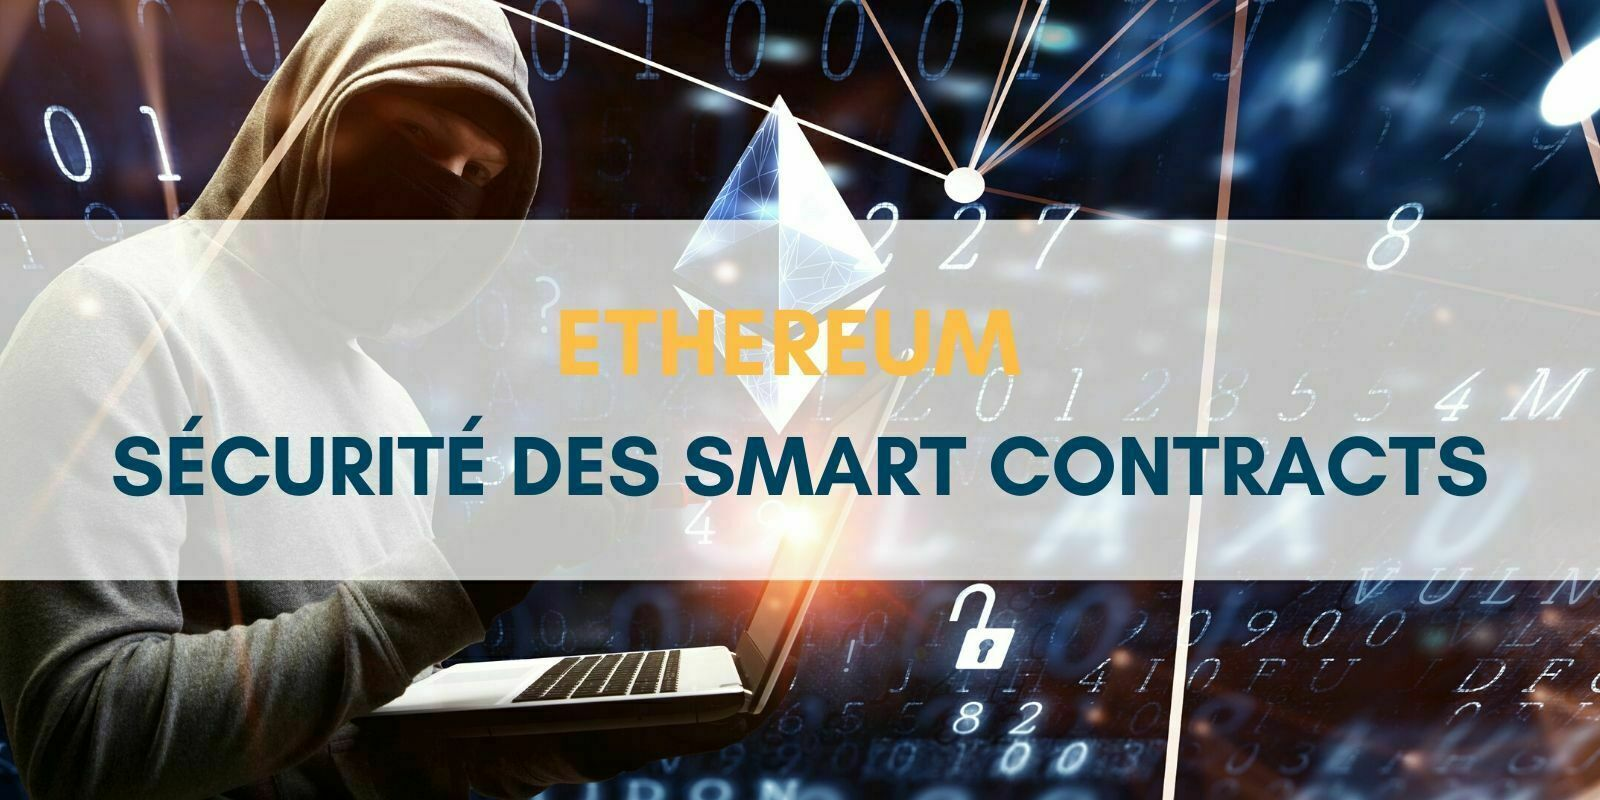 Ethereum sécurité des smart contracts contrats autonomes intelligents